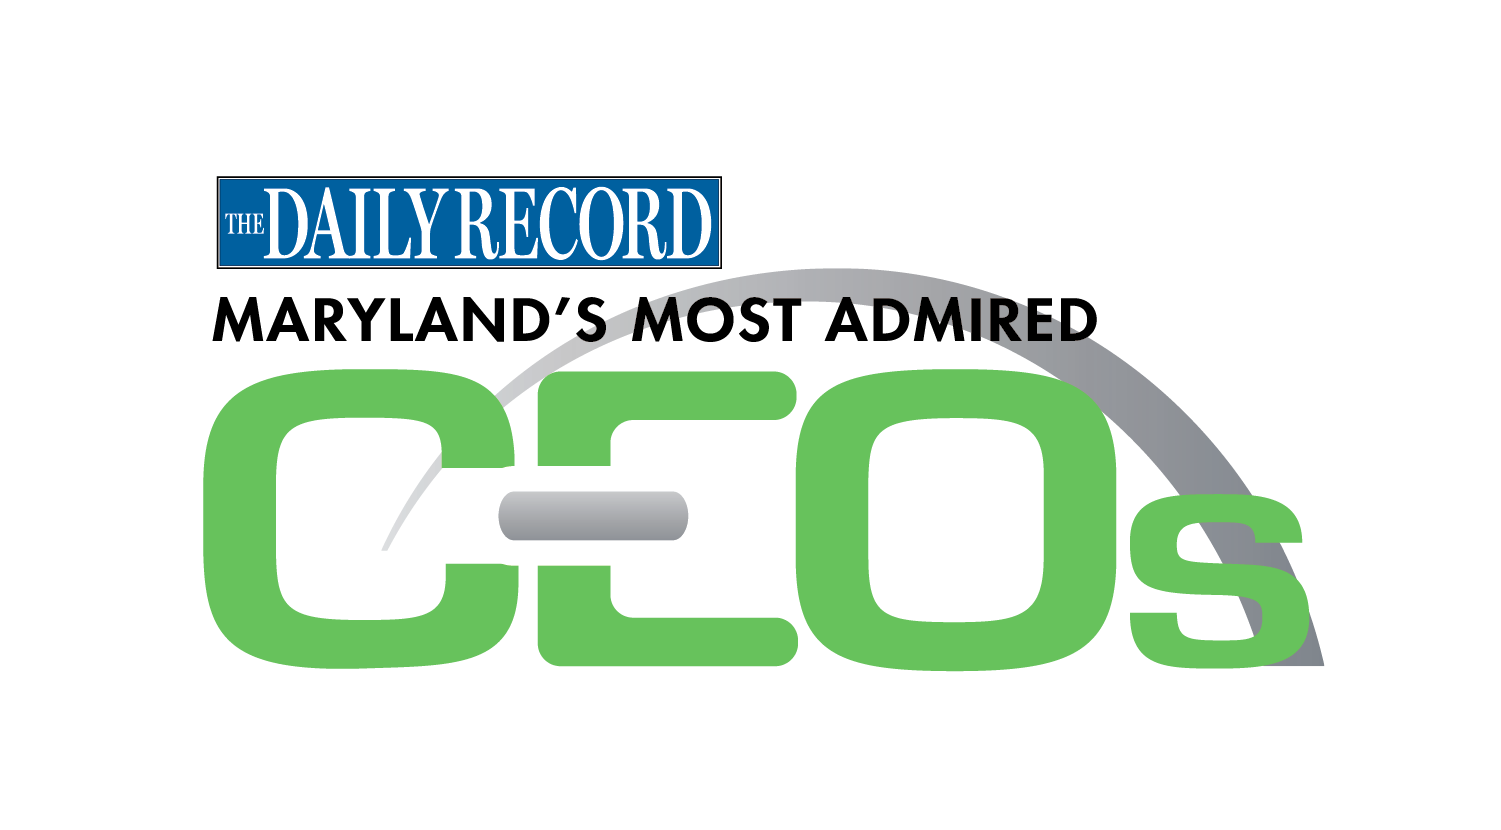 The Daily Record Most Admired CEOs 2019